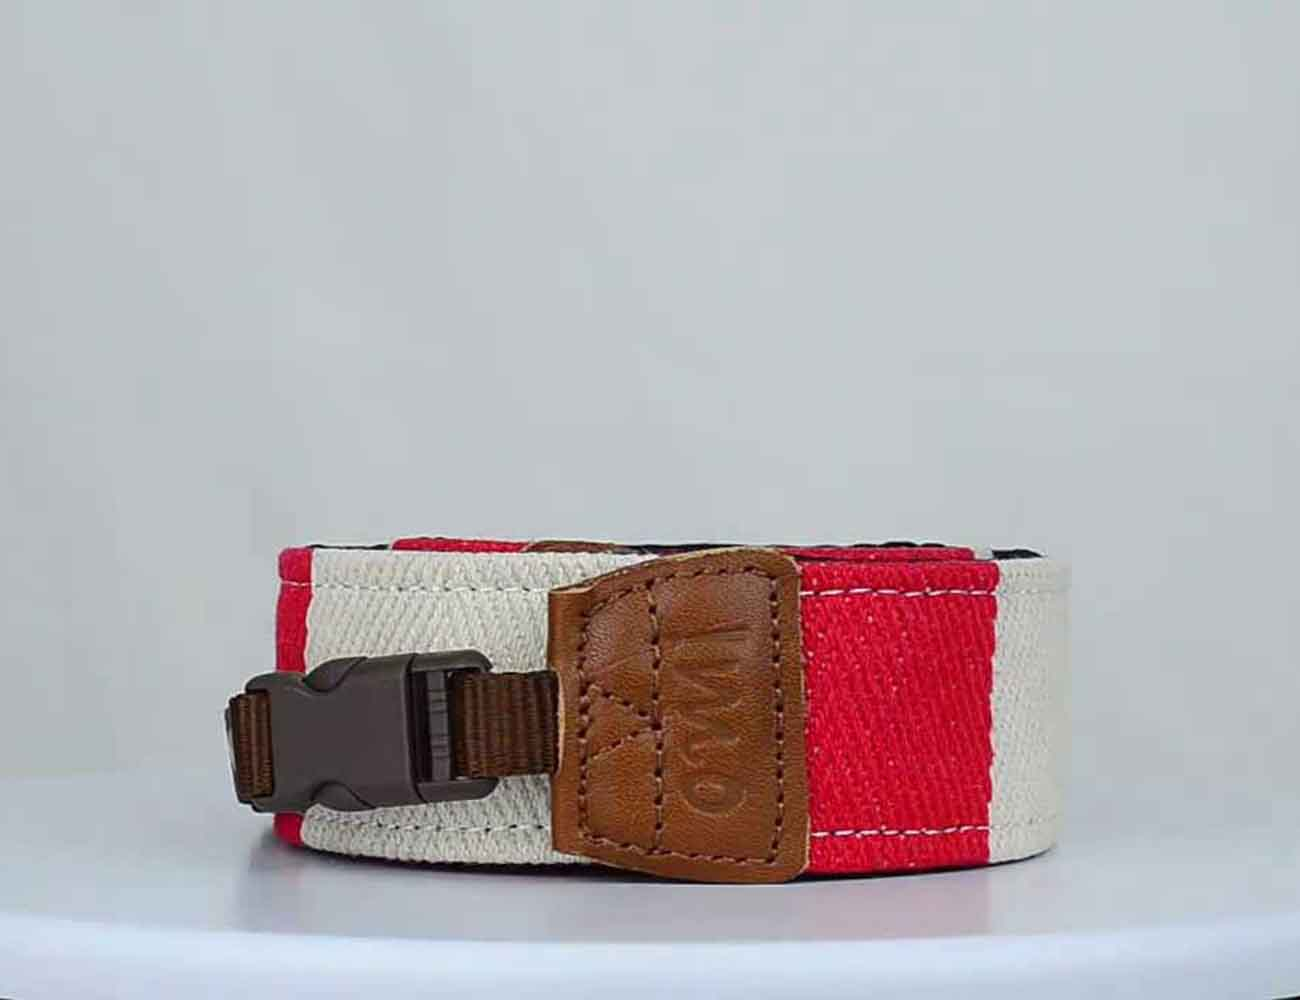 Reddie Fashionable Camera Strap With Colorful Patterns